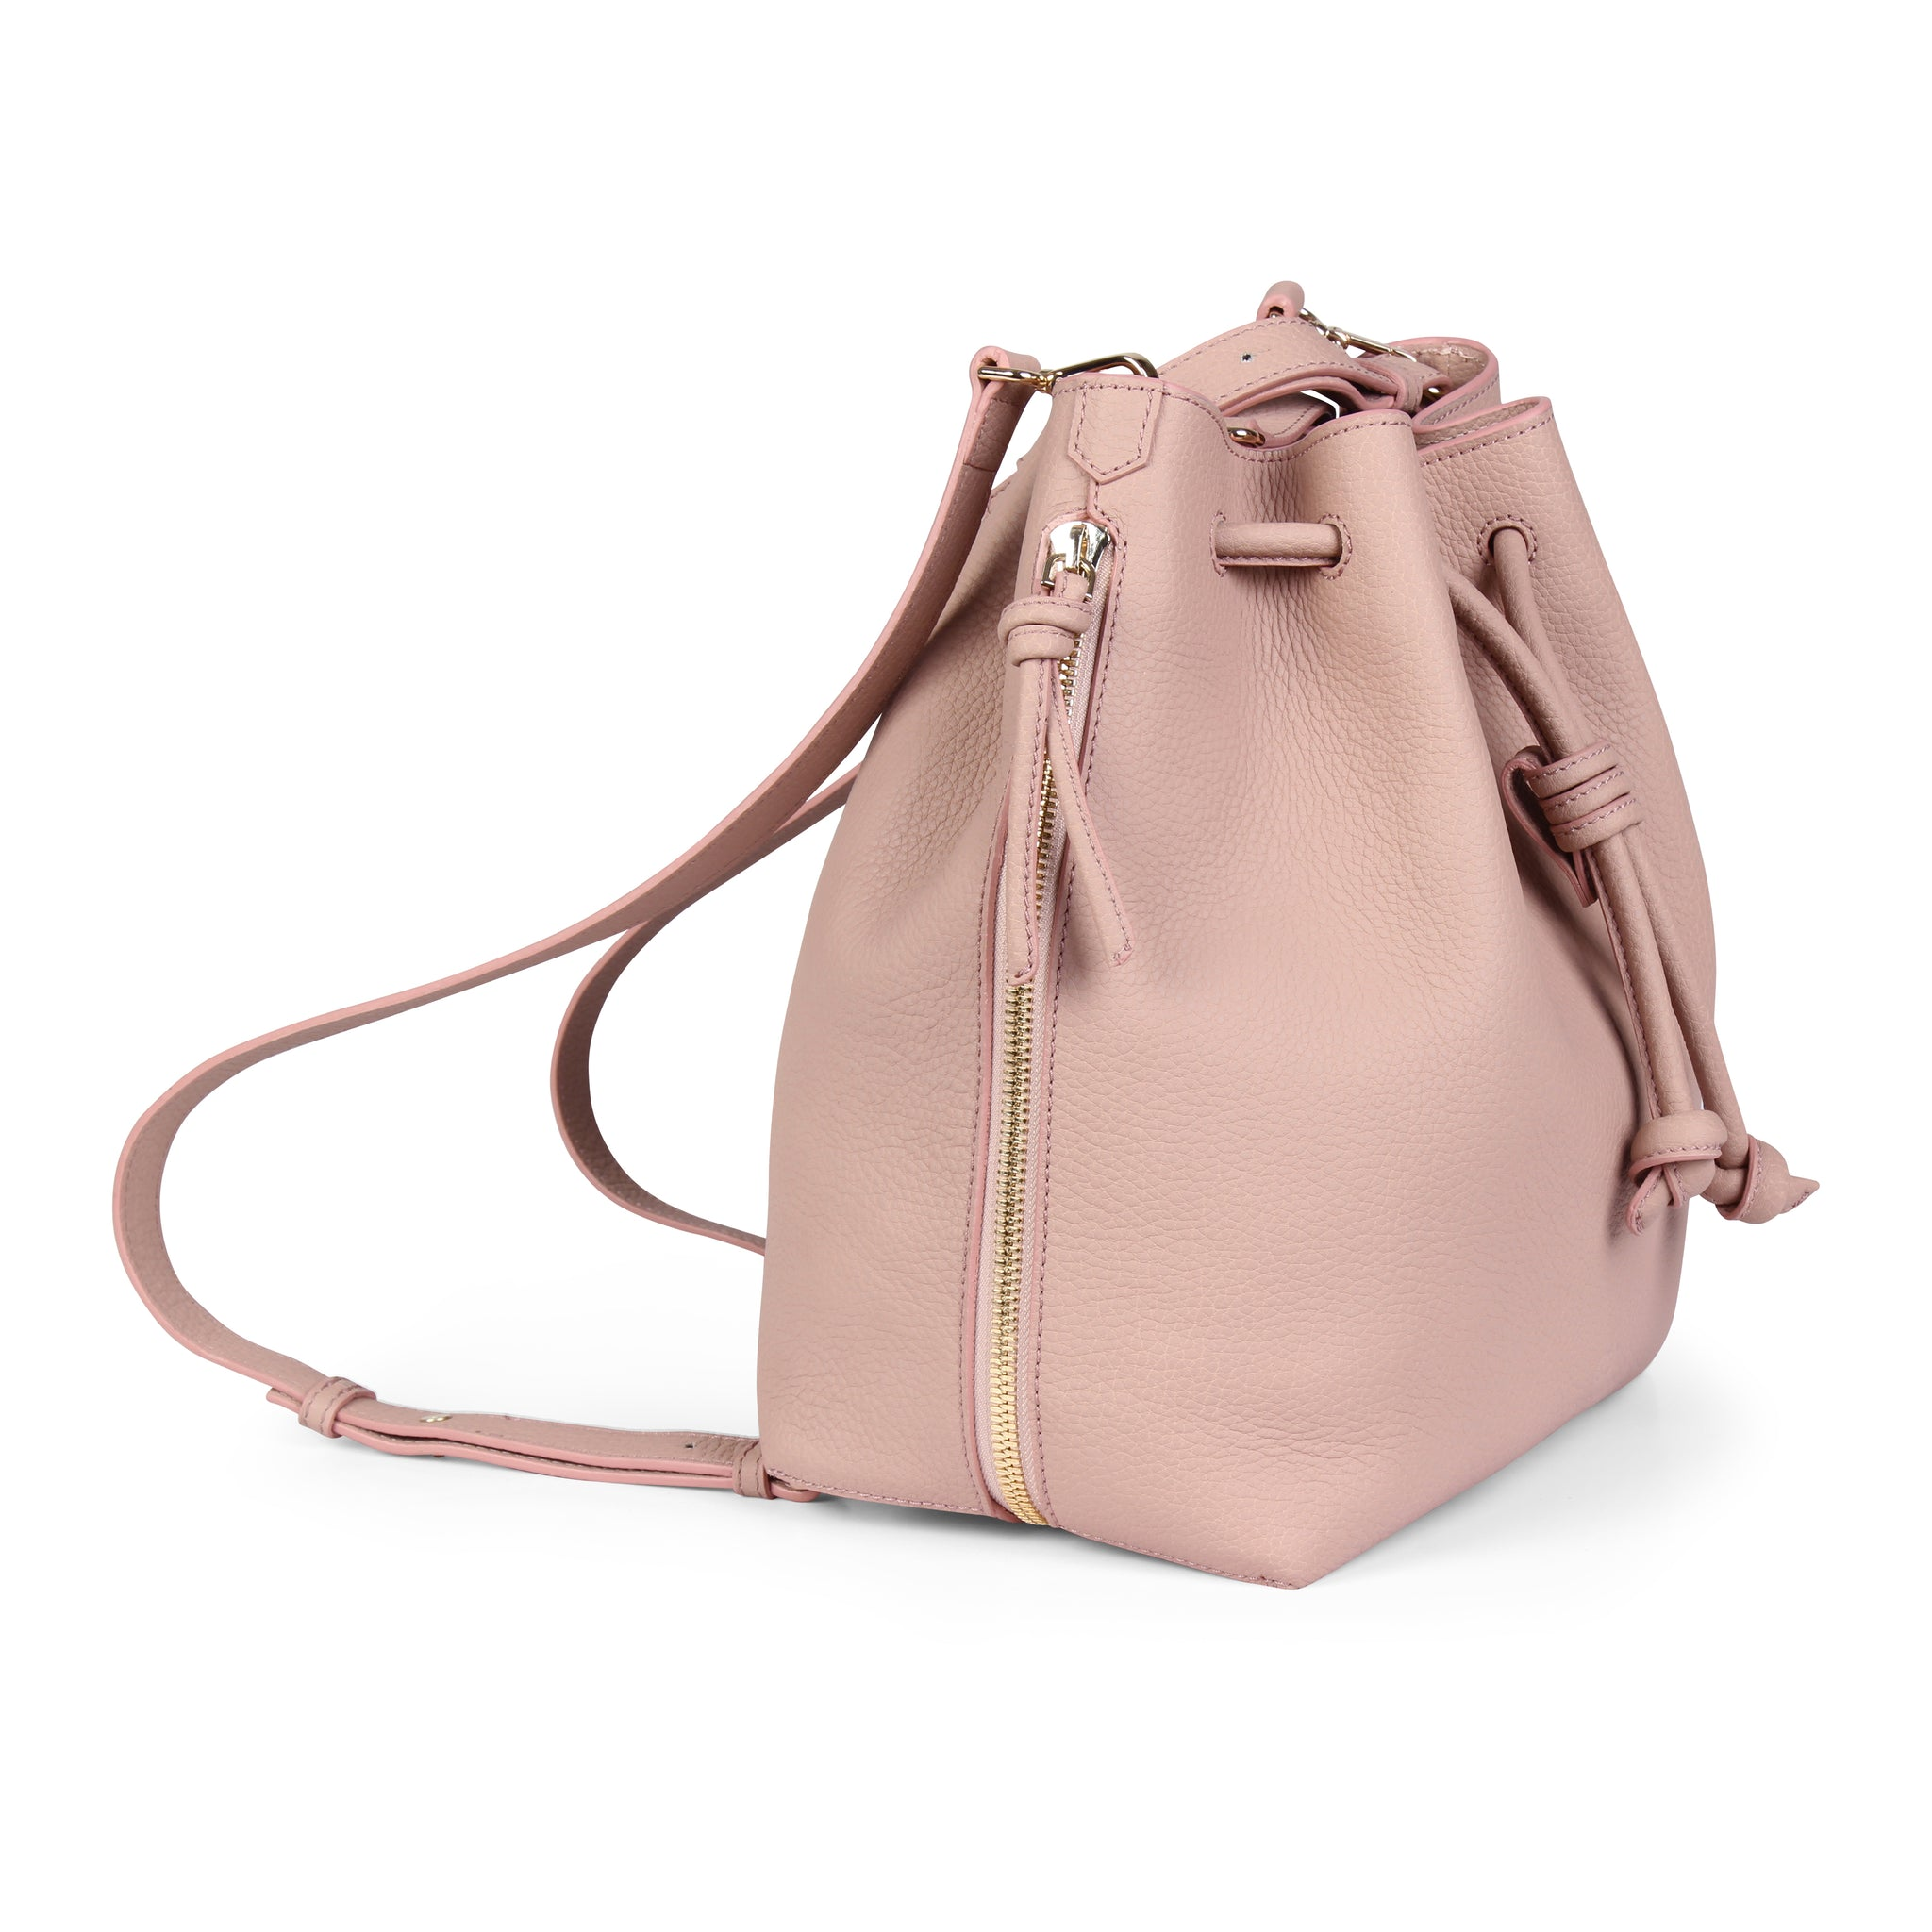 A convertible laptop size womens leather backpack in pink that could be used as a crossbody as well as a bucket bag, zippers closed, side image.